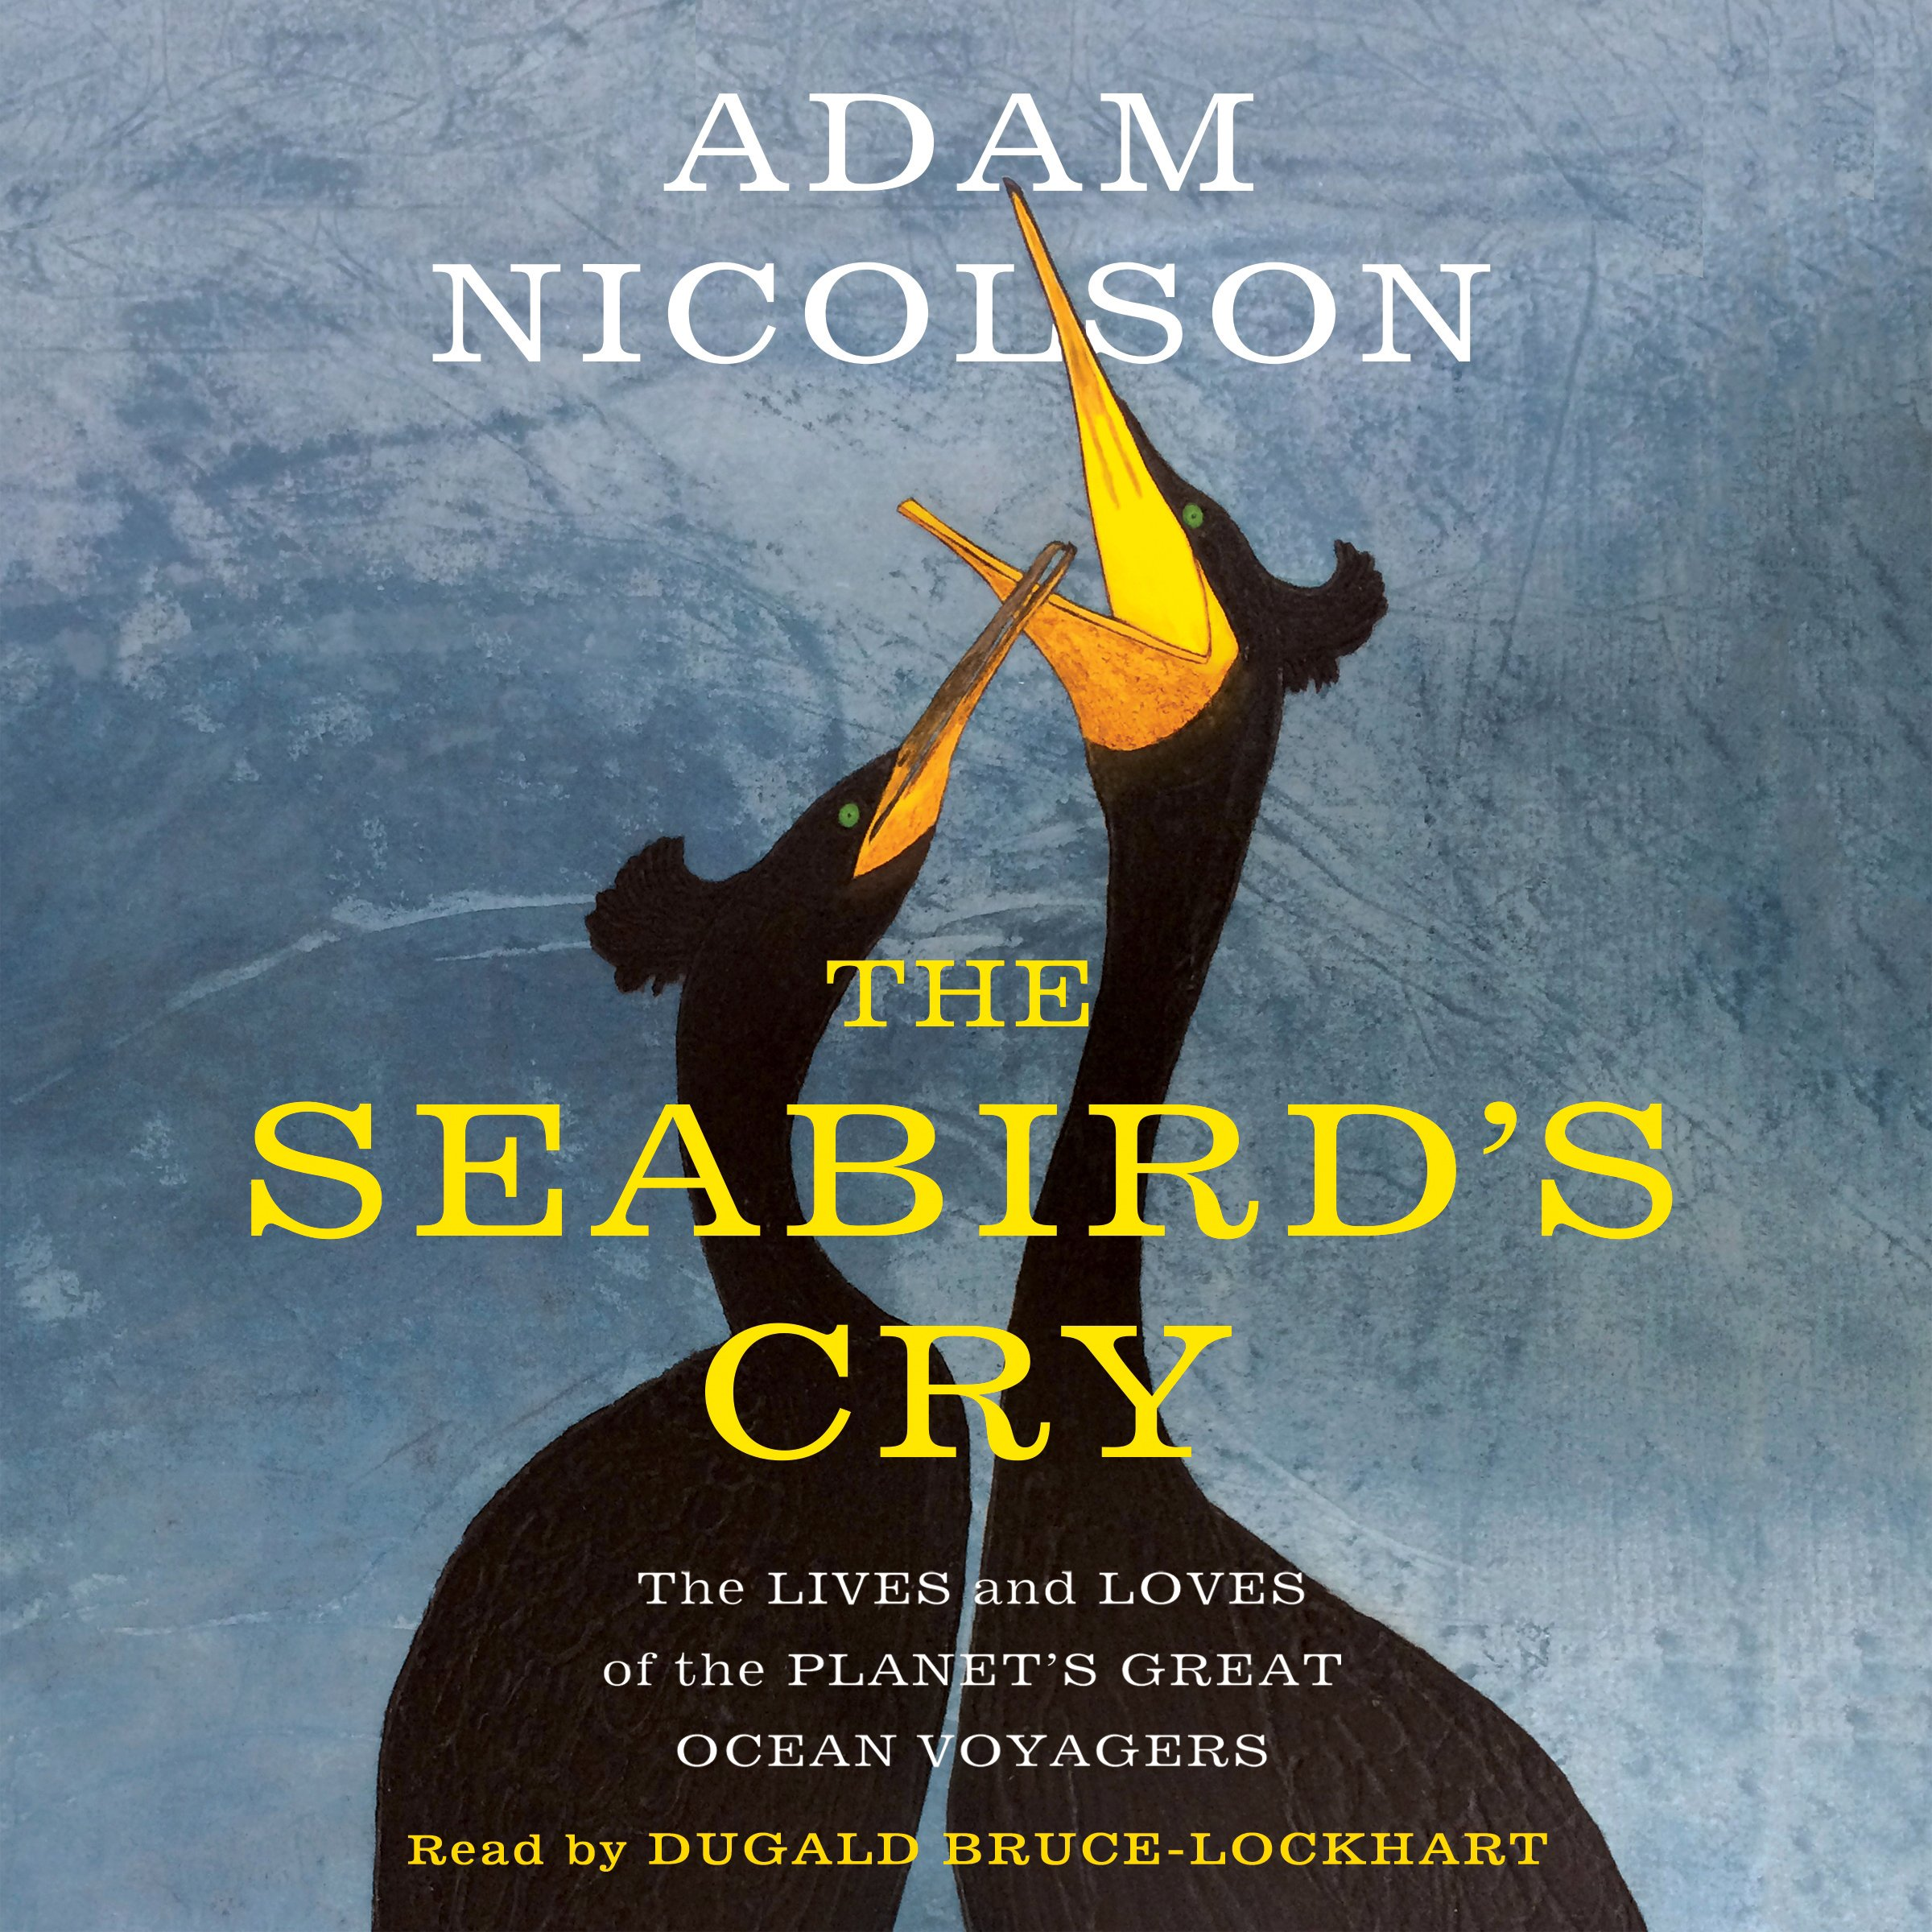 The Seabird's Cry: The Lives and Loves of the Planet's Great Ocean Voyagers